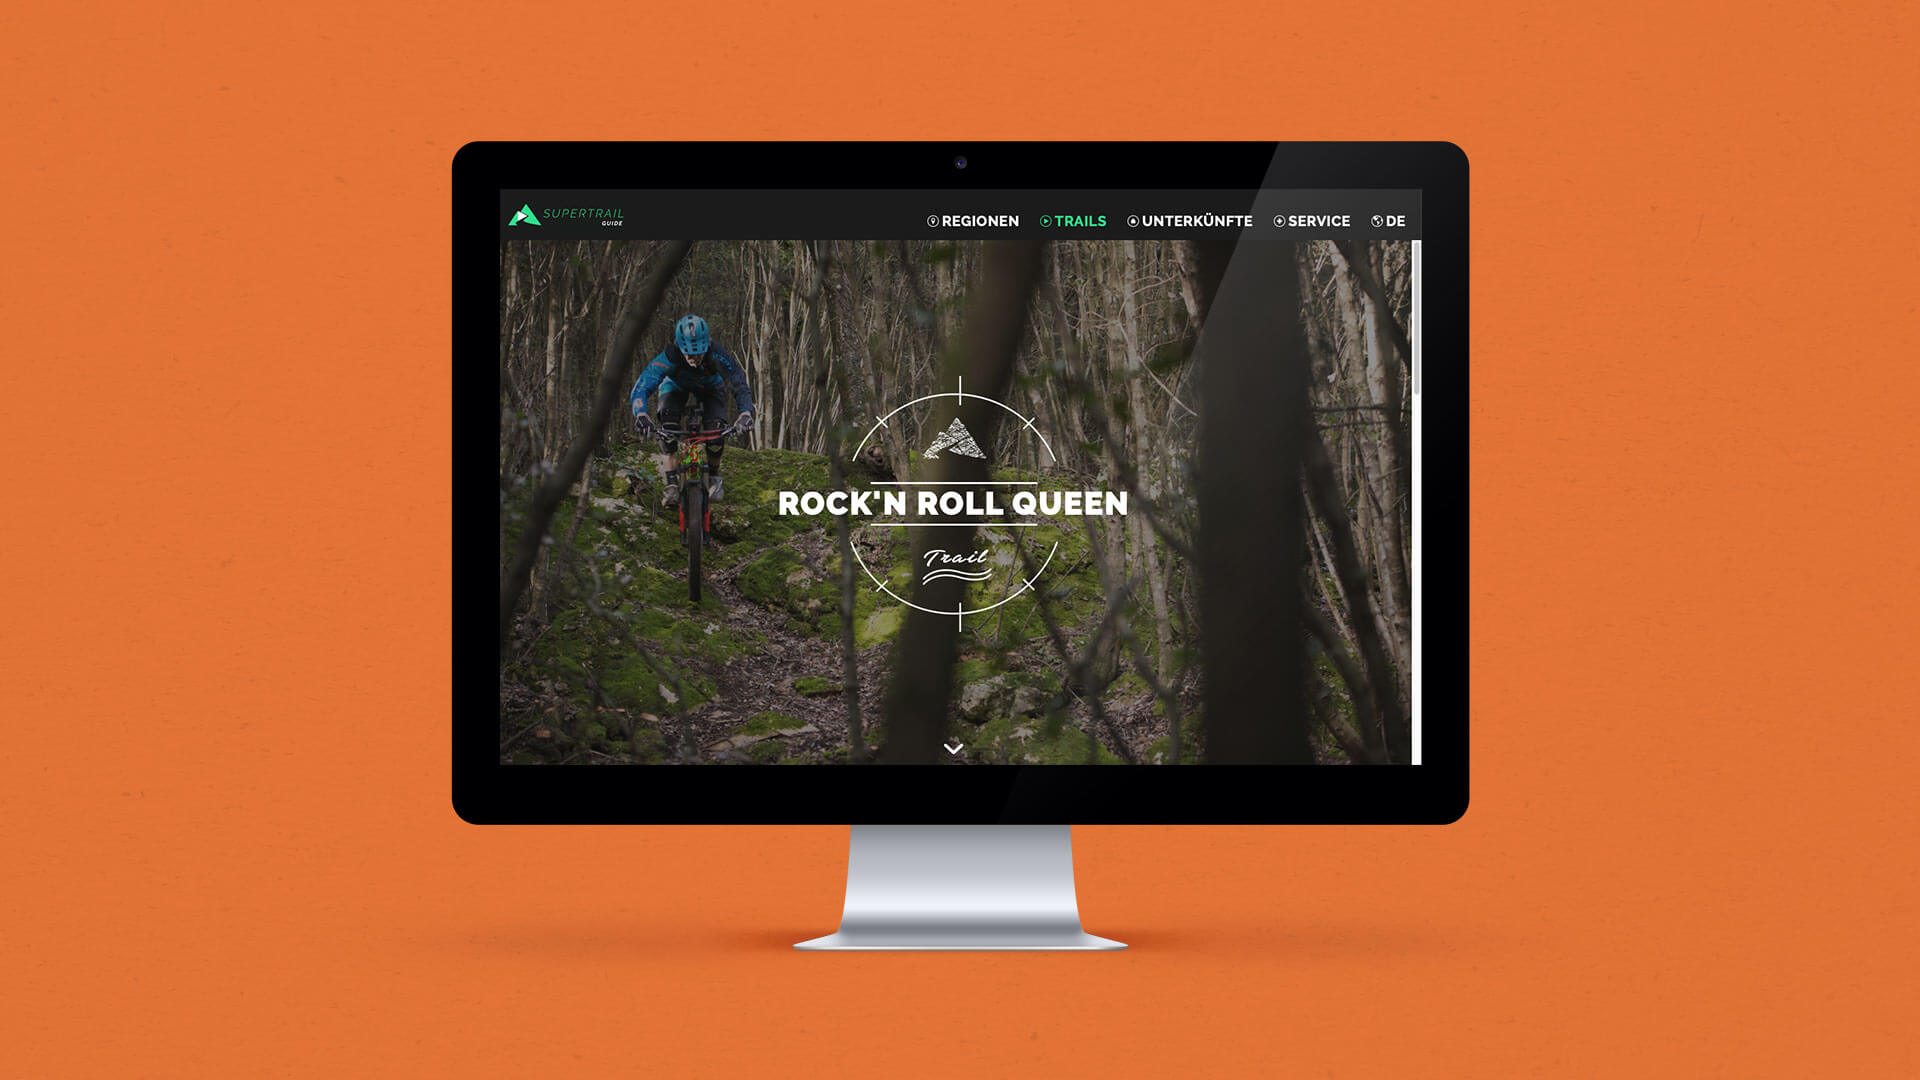 Mockup of a Trail Page on the Supertrail Guide Website